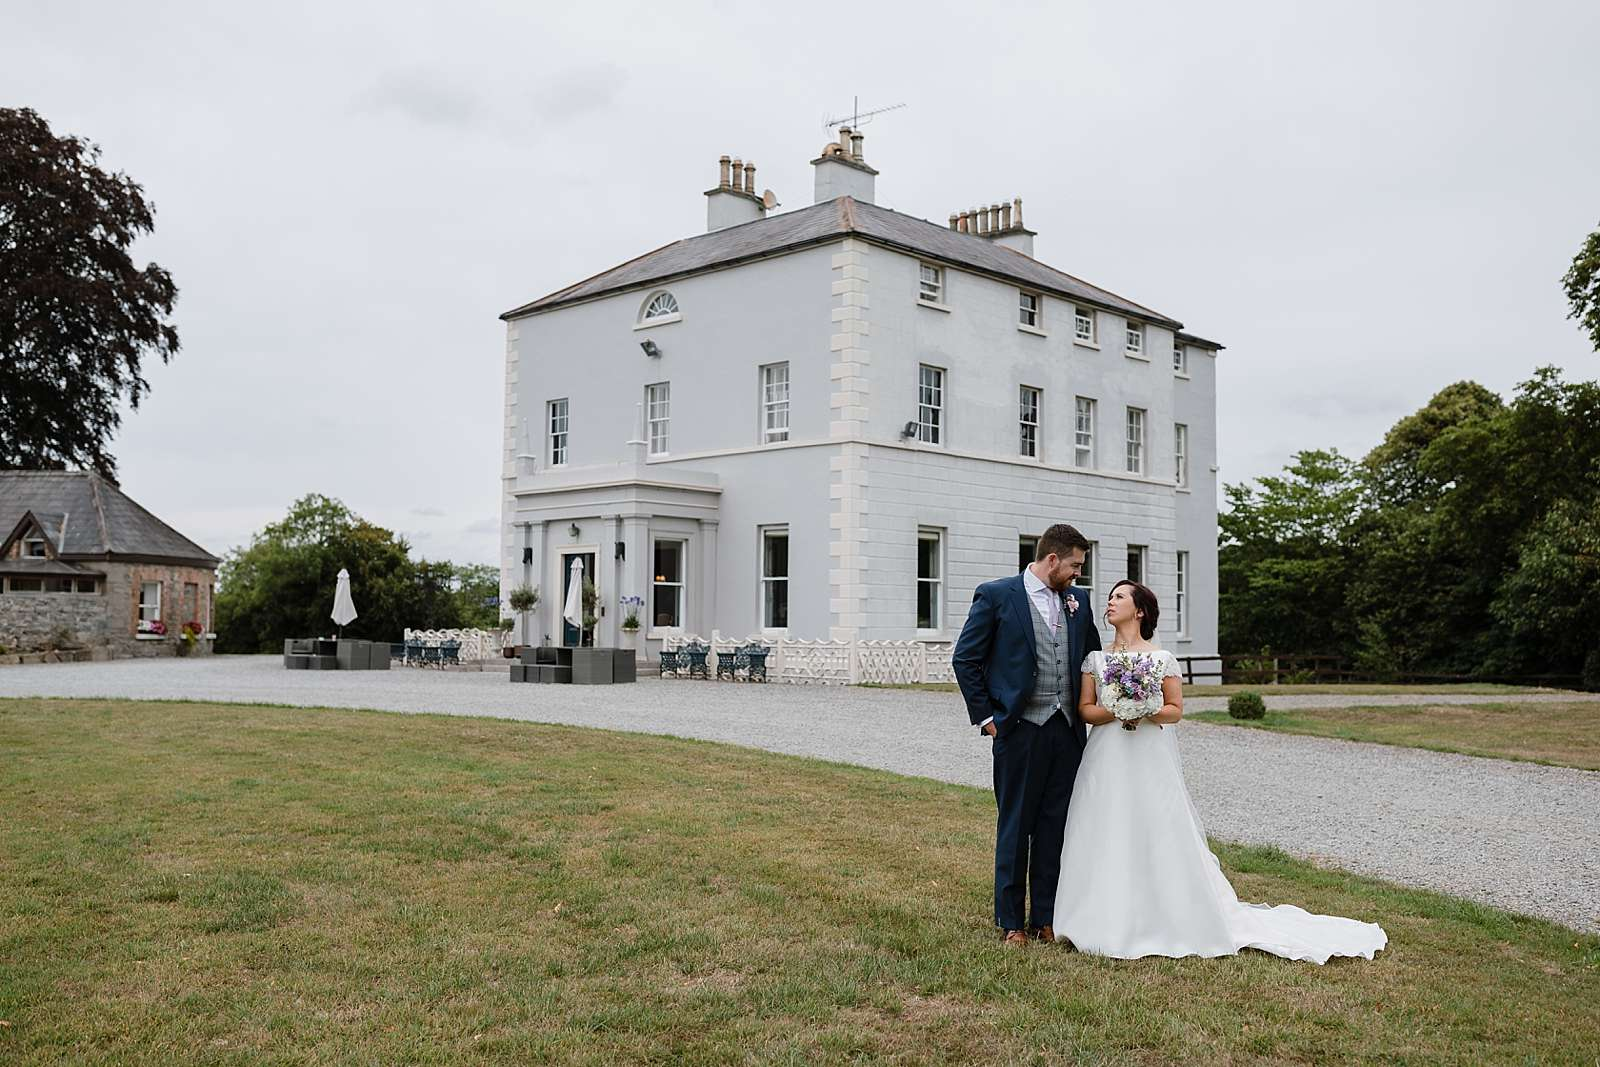 A summer wedding at Boyne Hill House